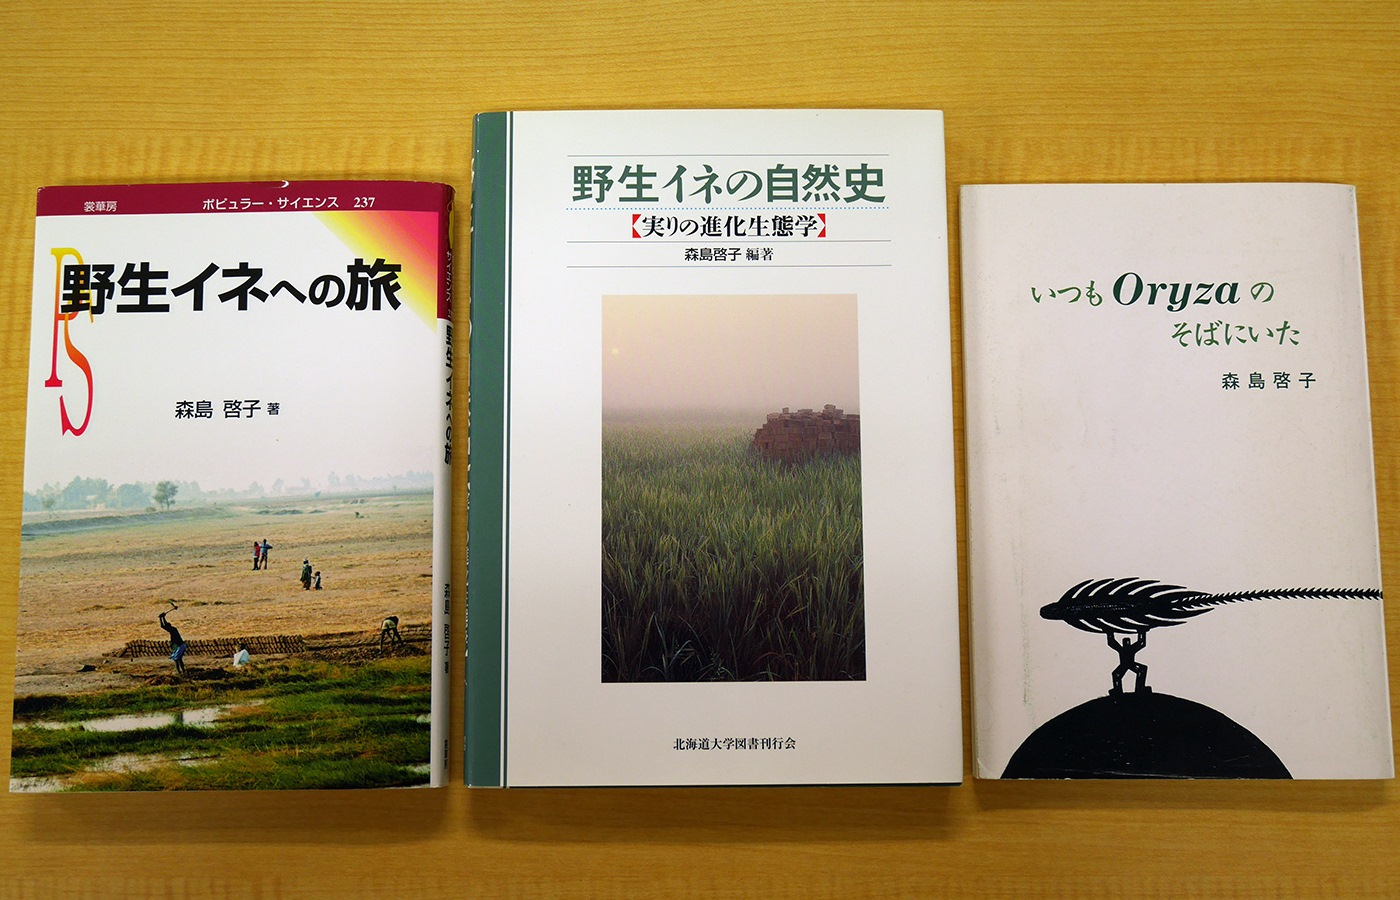 Books and Essay Collections of Dr. Morishima.